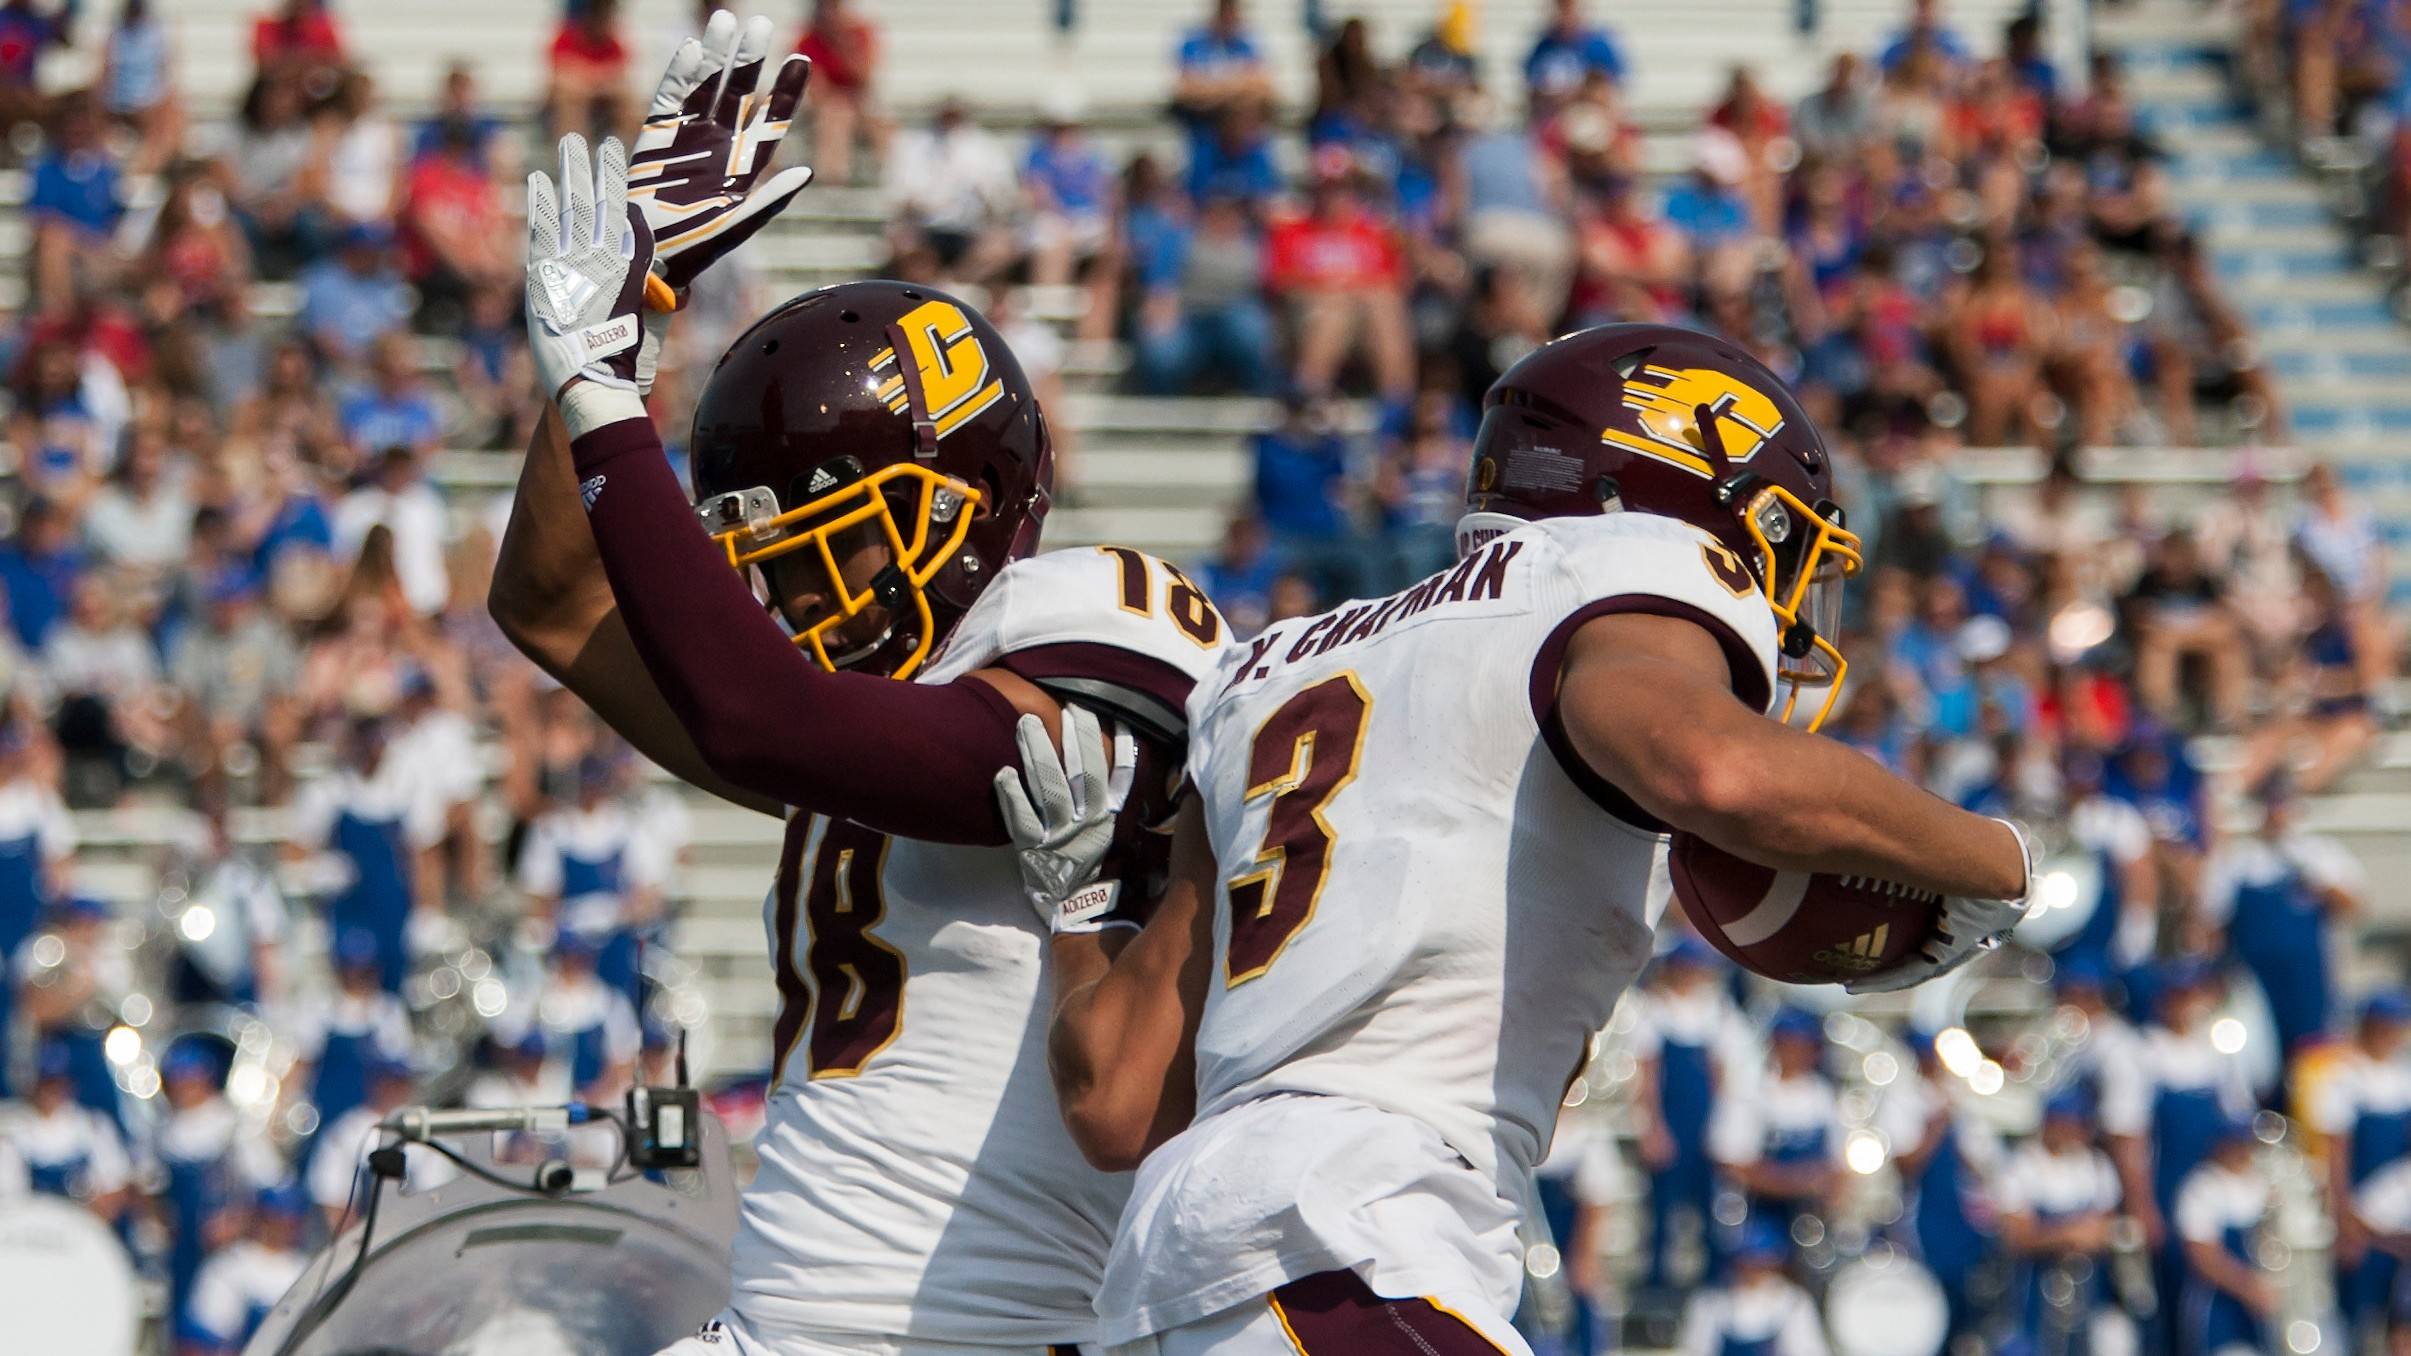 Western Michigan vs. Central Michigan Odds & Picks: Moneyline Value on Chippewas on Wednesday article feature image